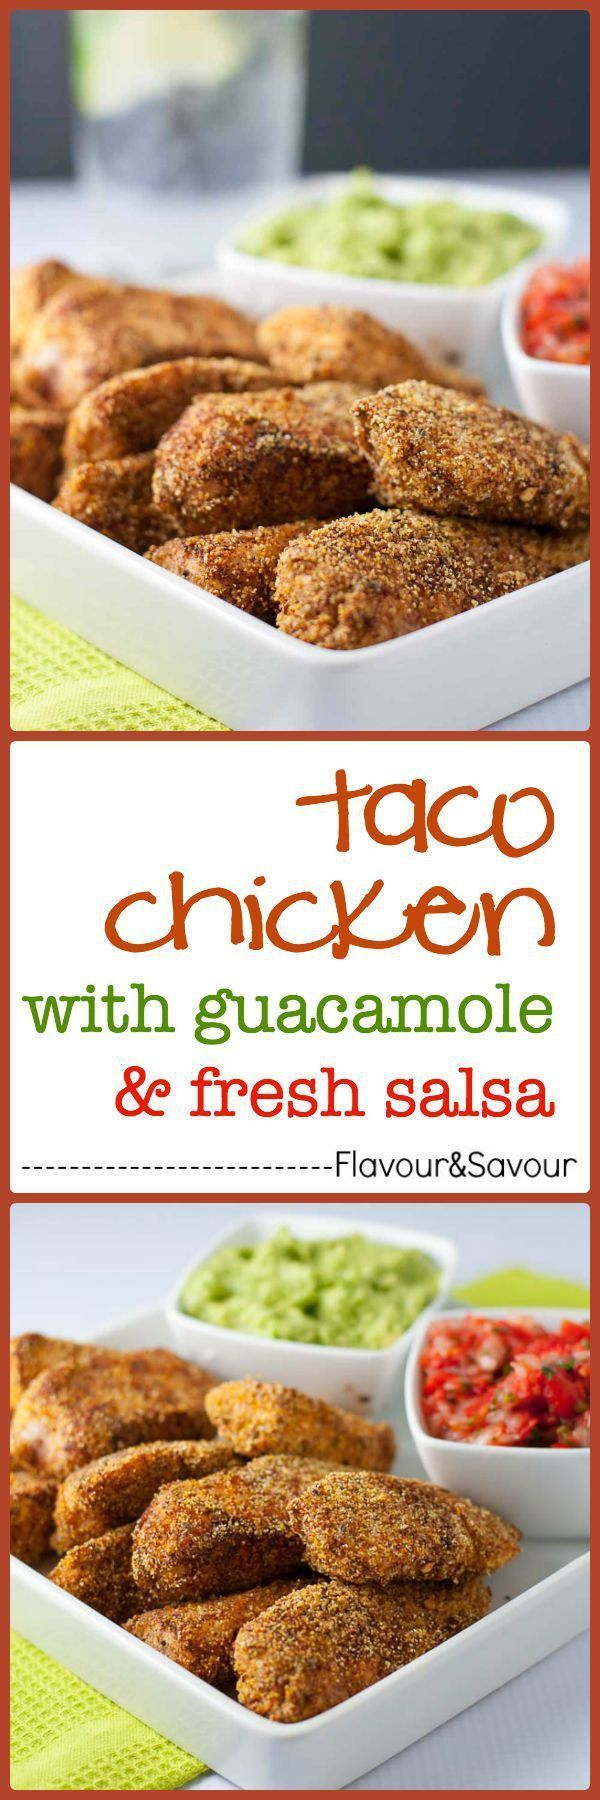 Taco Chicken Strips with Guacamole and Fresh Salsa for dipping. Ready in 30 minutes! |www.flavourandsavour.com